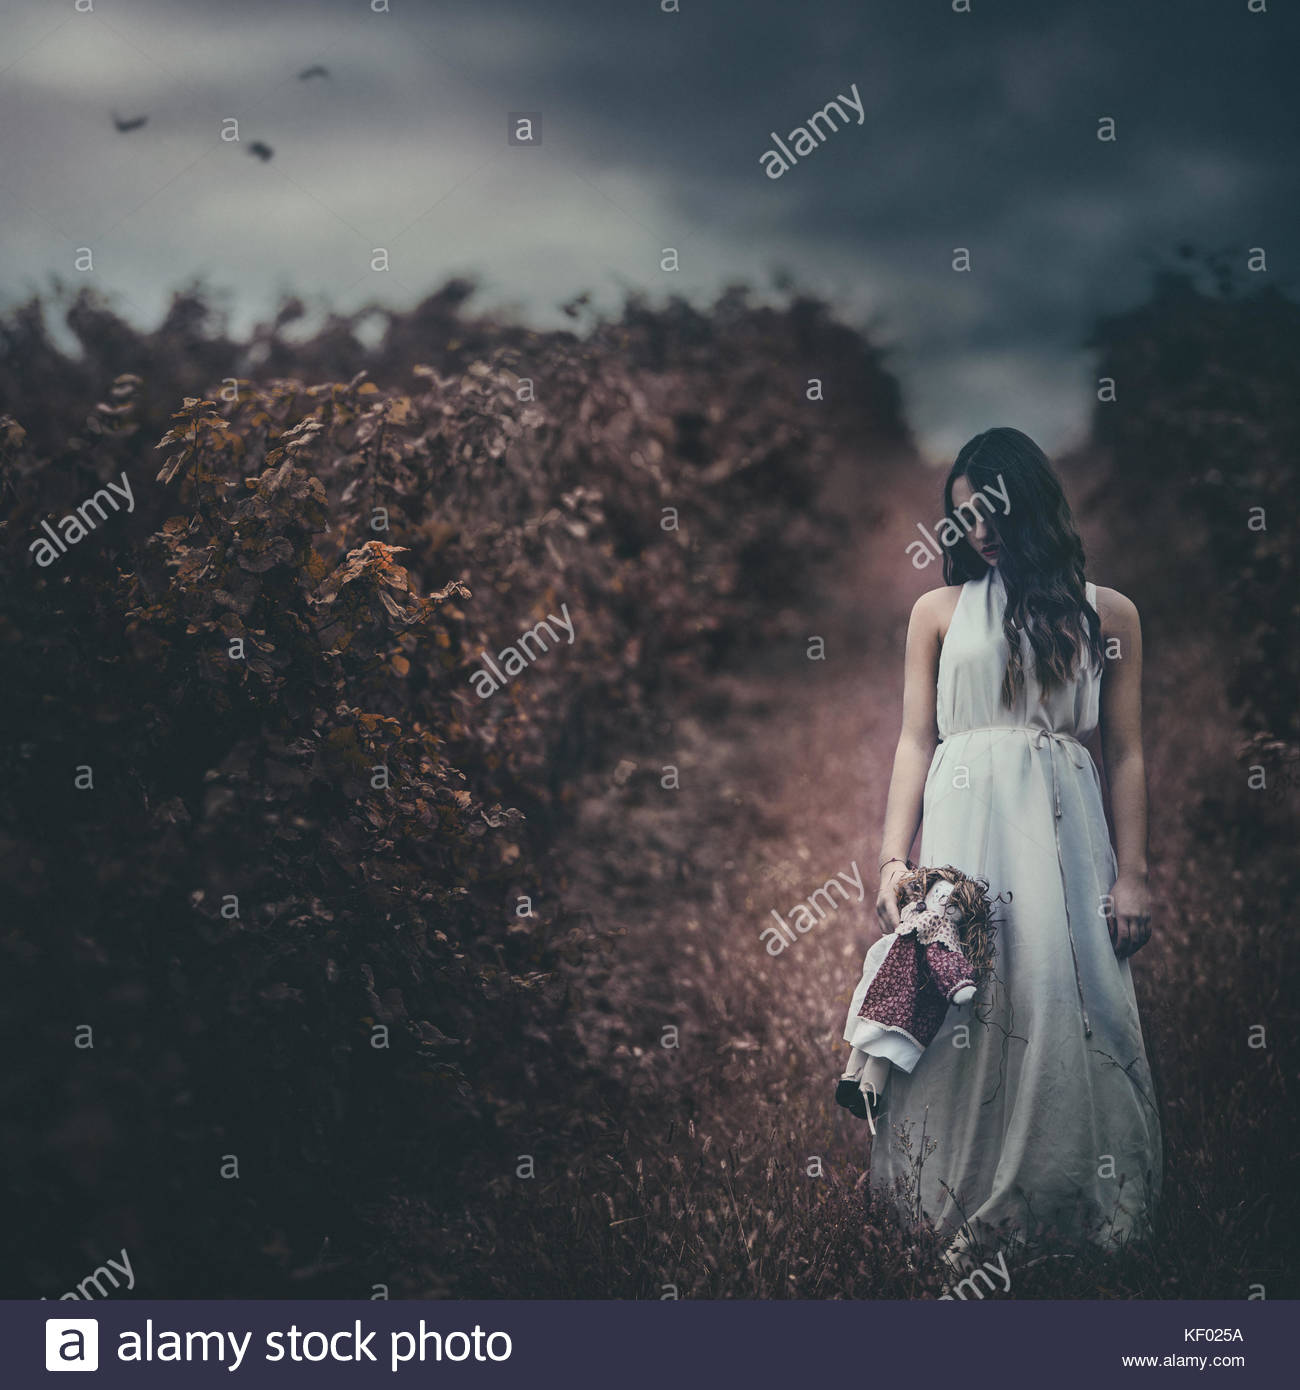 Girl holding a doll, standing in a vineyard at dusk, cloudy sky, sad expression - Stock Image